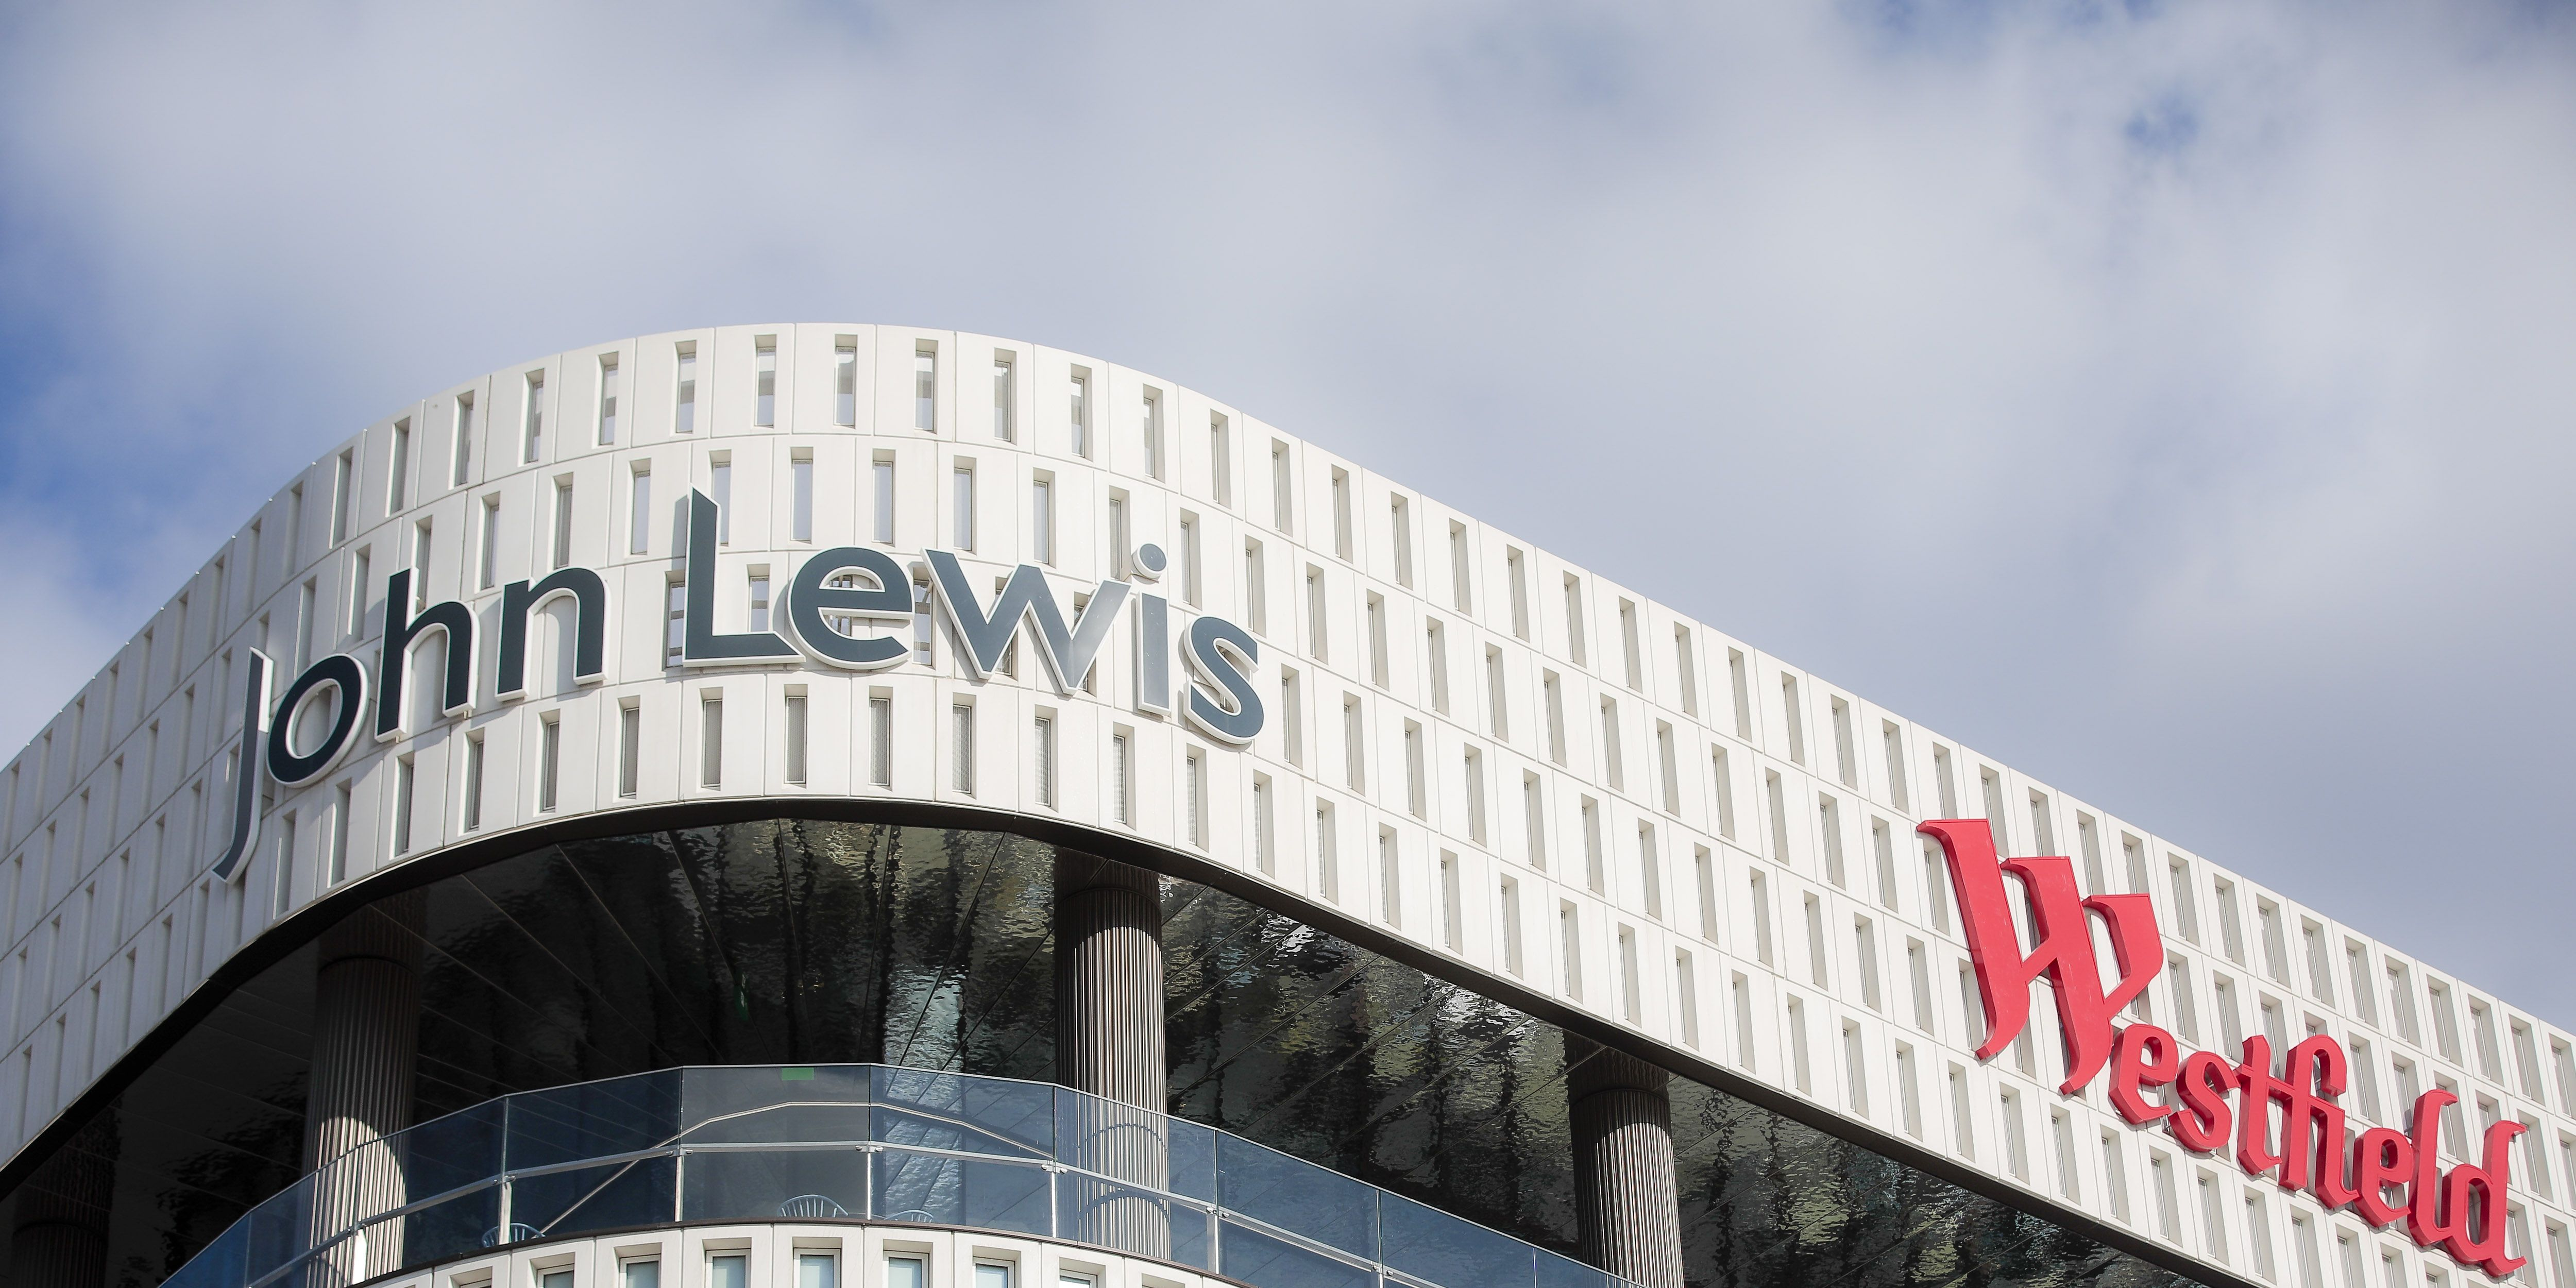 John Lewis White City / Shepherds Bush -Westfield - new department store opening on 20 March 2018